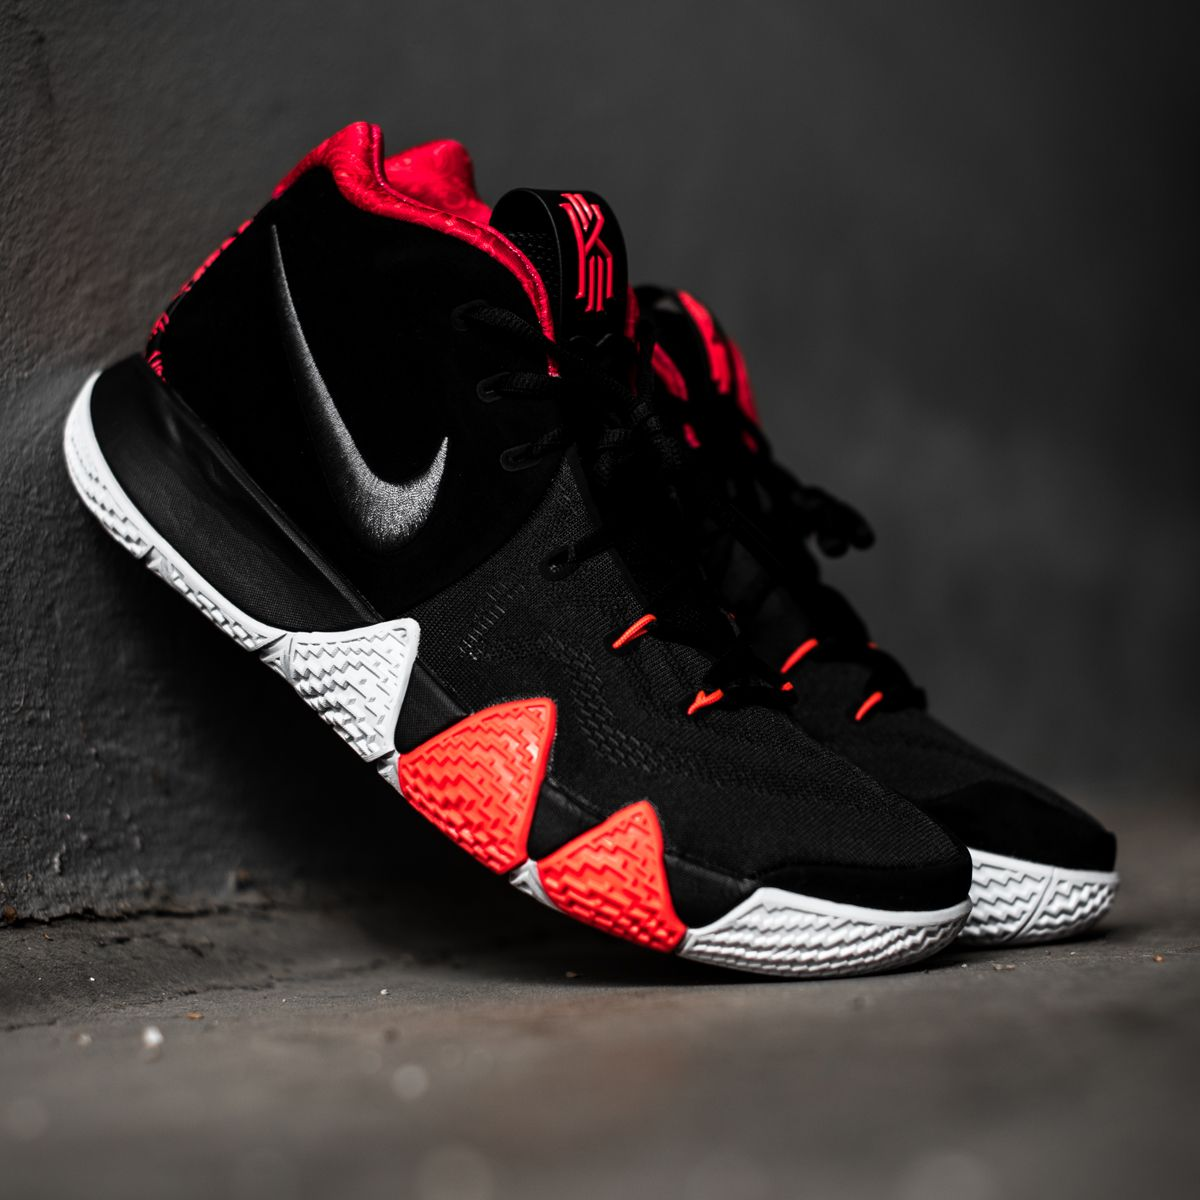 72141357c0ca8b This Nike Kyrie 4 colorway is inspired by Irving s incredible 41-point  performance in Game 5 of the NBA Finals